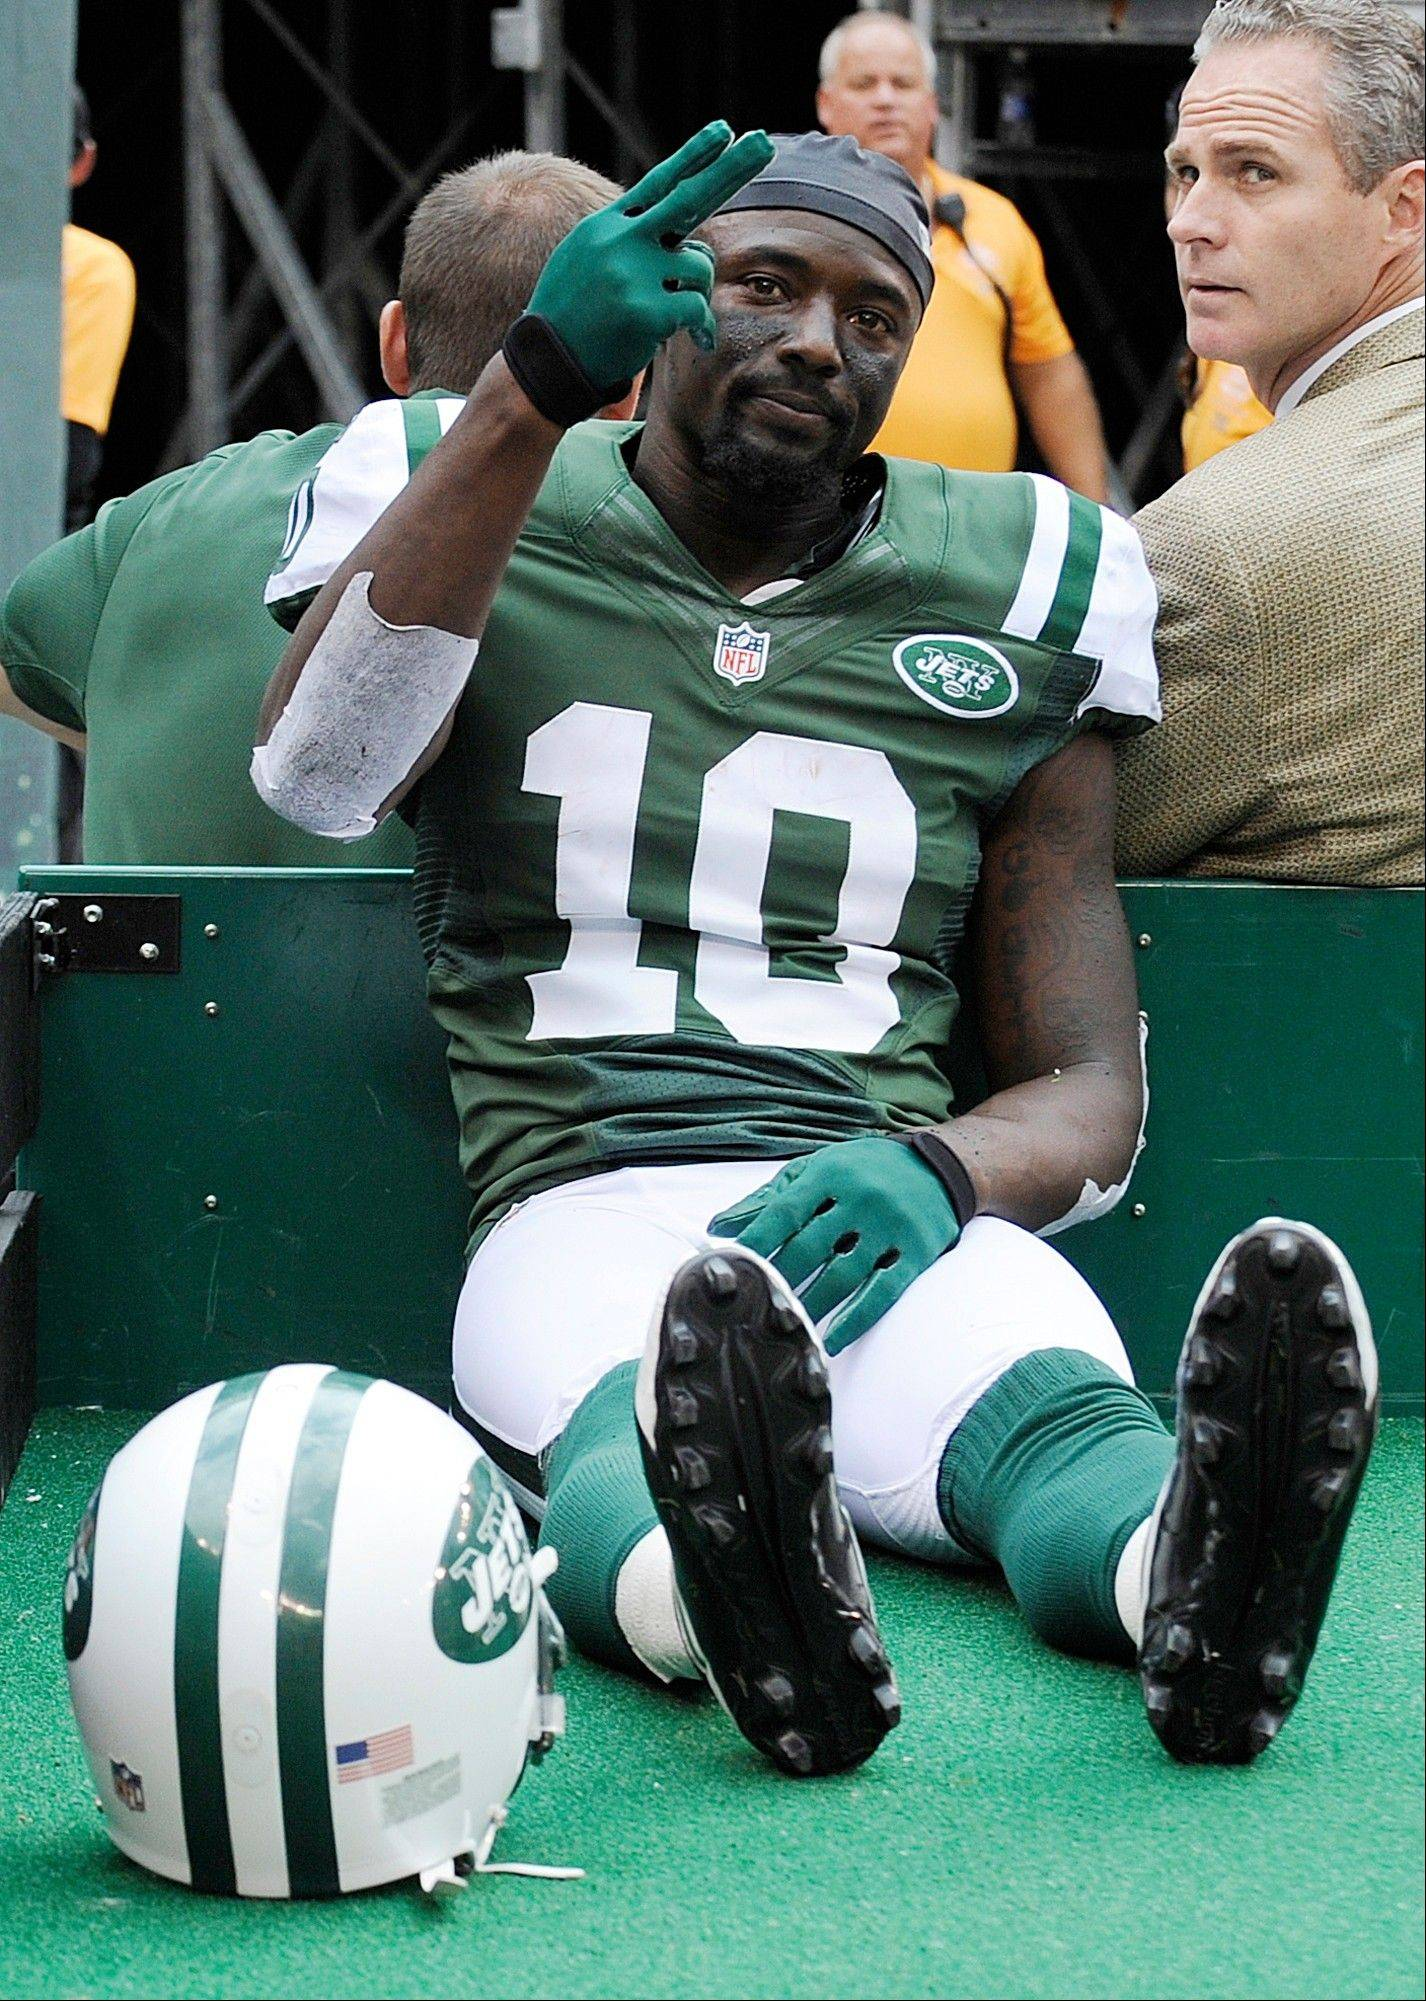 New York Jets wide receiver Santonio Holmes will miss the rest of this season with a Lisfranc injury in his left foot, leaving the struggling New York Jets without their top offensive playmaker. The Jets announced Wednesday that Holmes, who will require surgery, was placed on season-ending injured reserve.